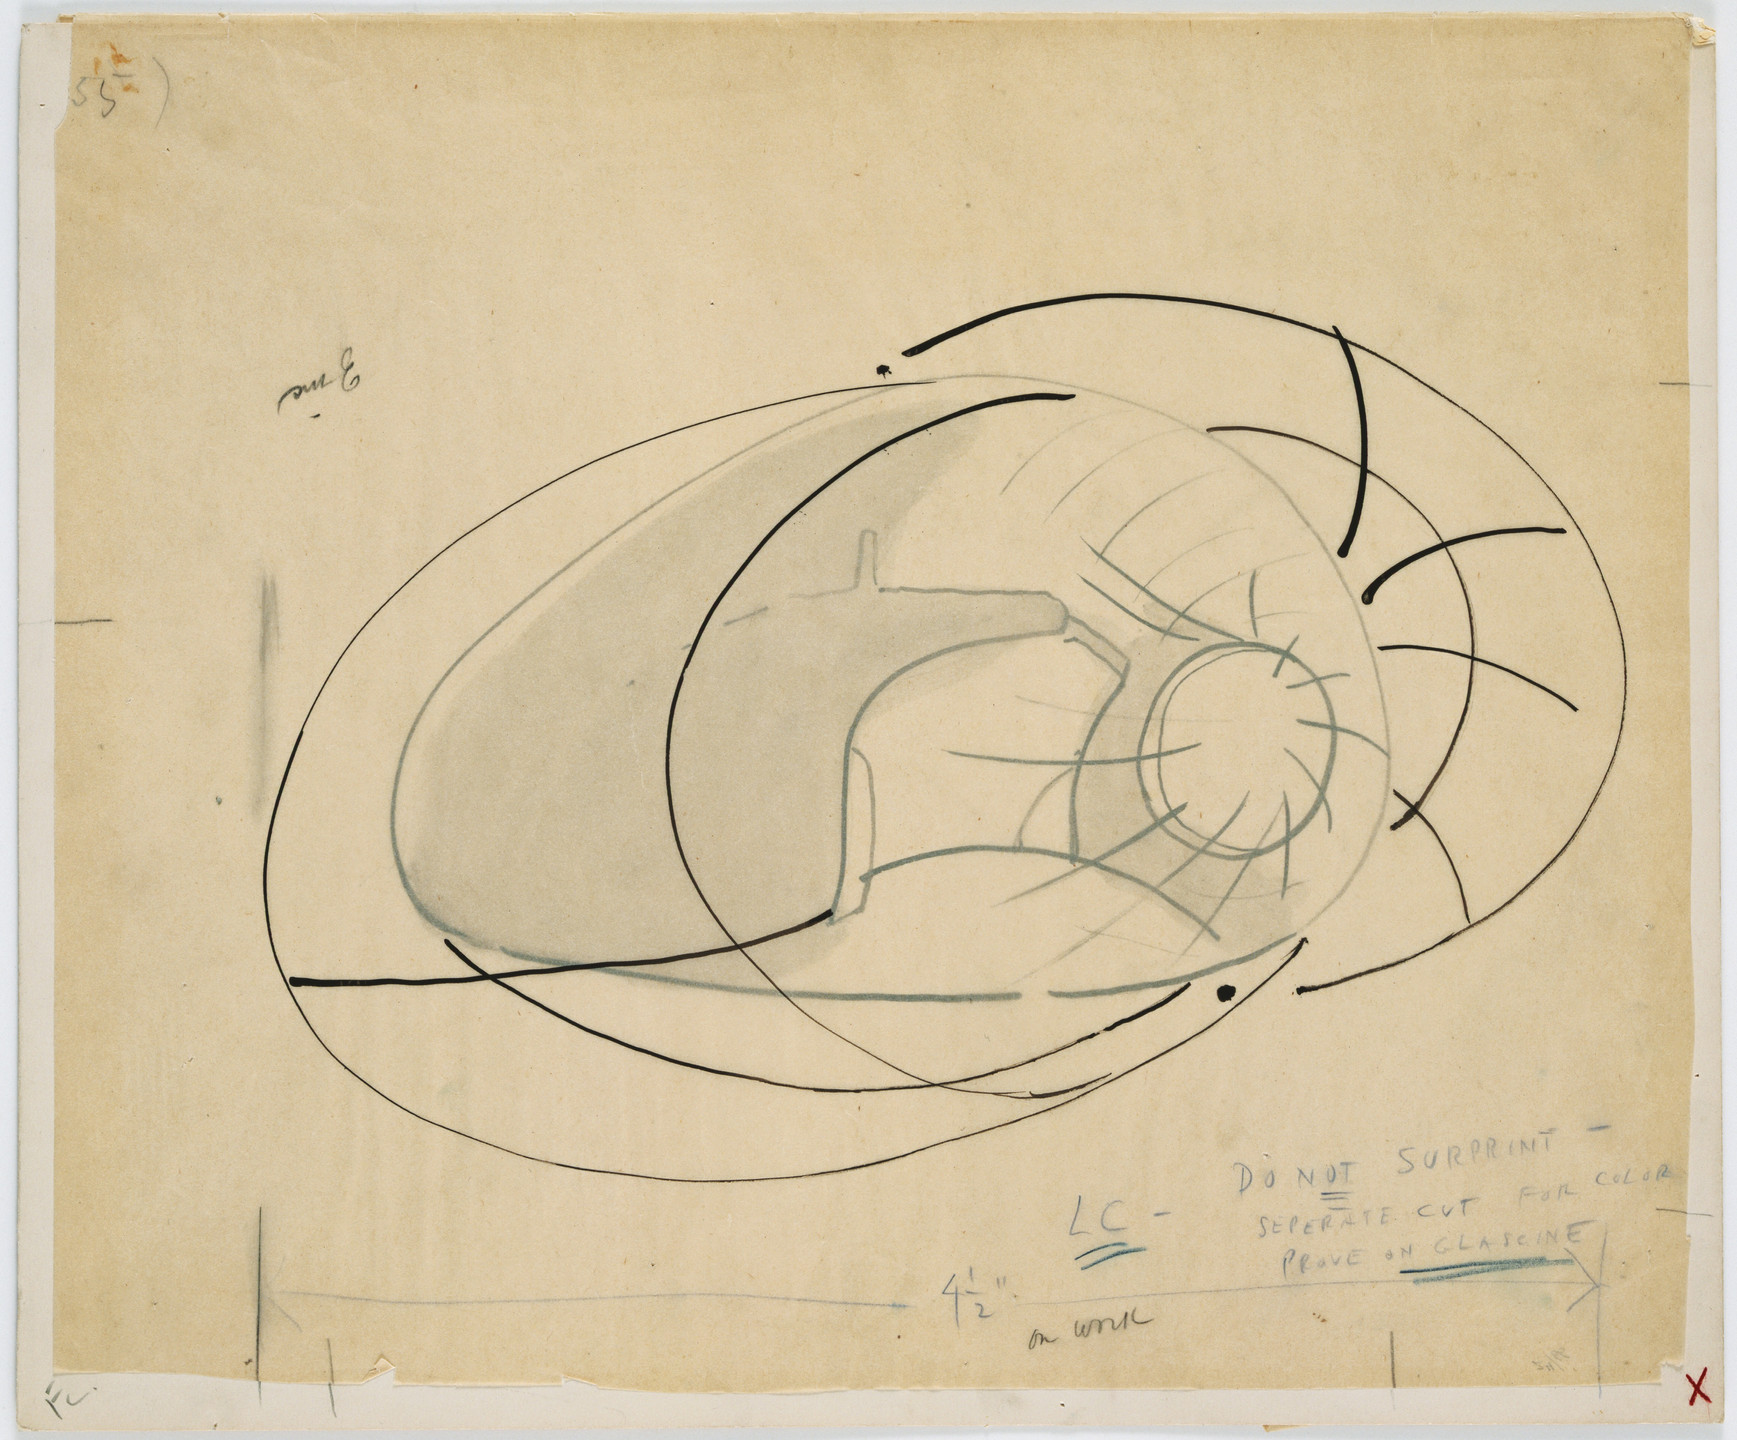 Frederick Kiesler. Endless House Project, Interior perspective. 1951